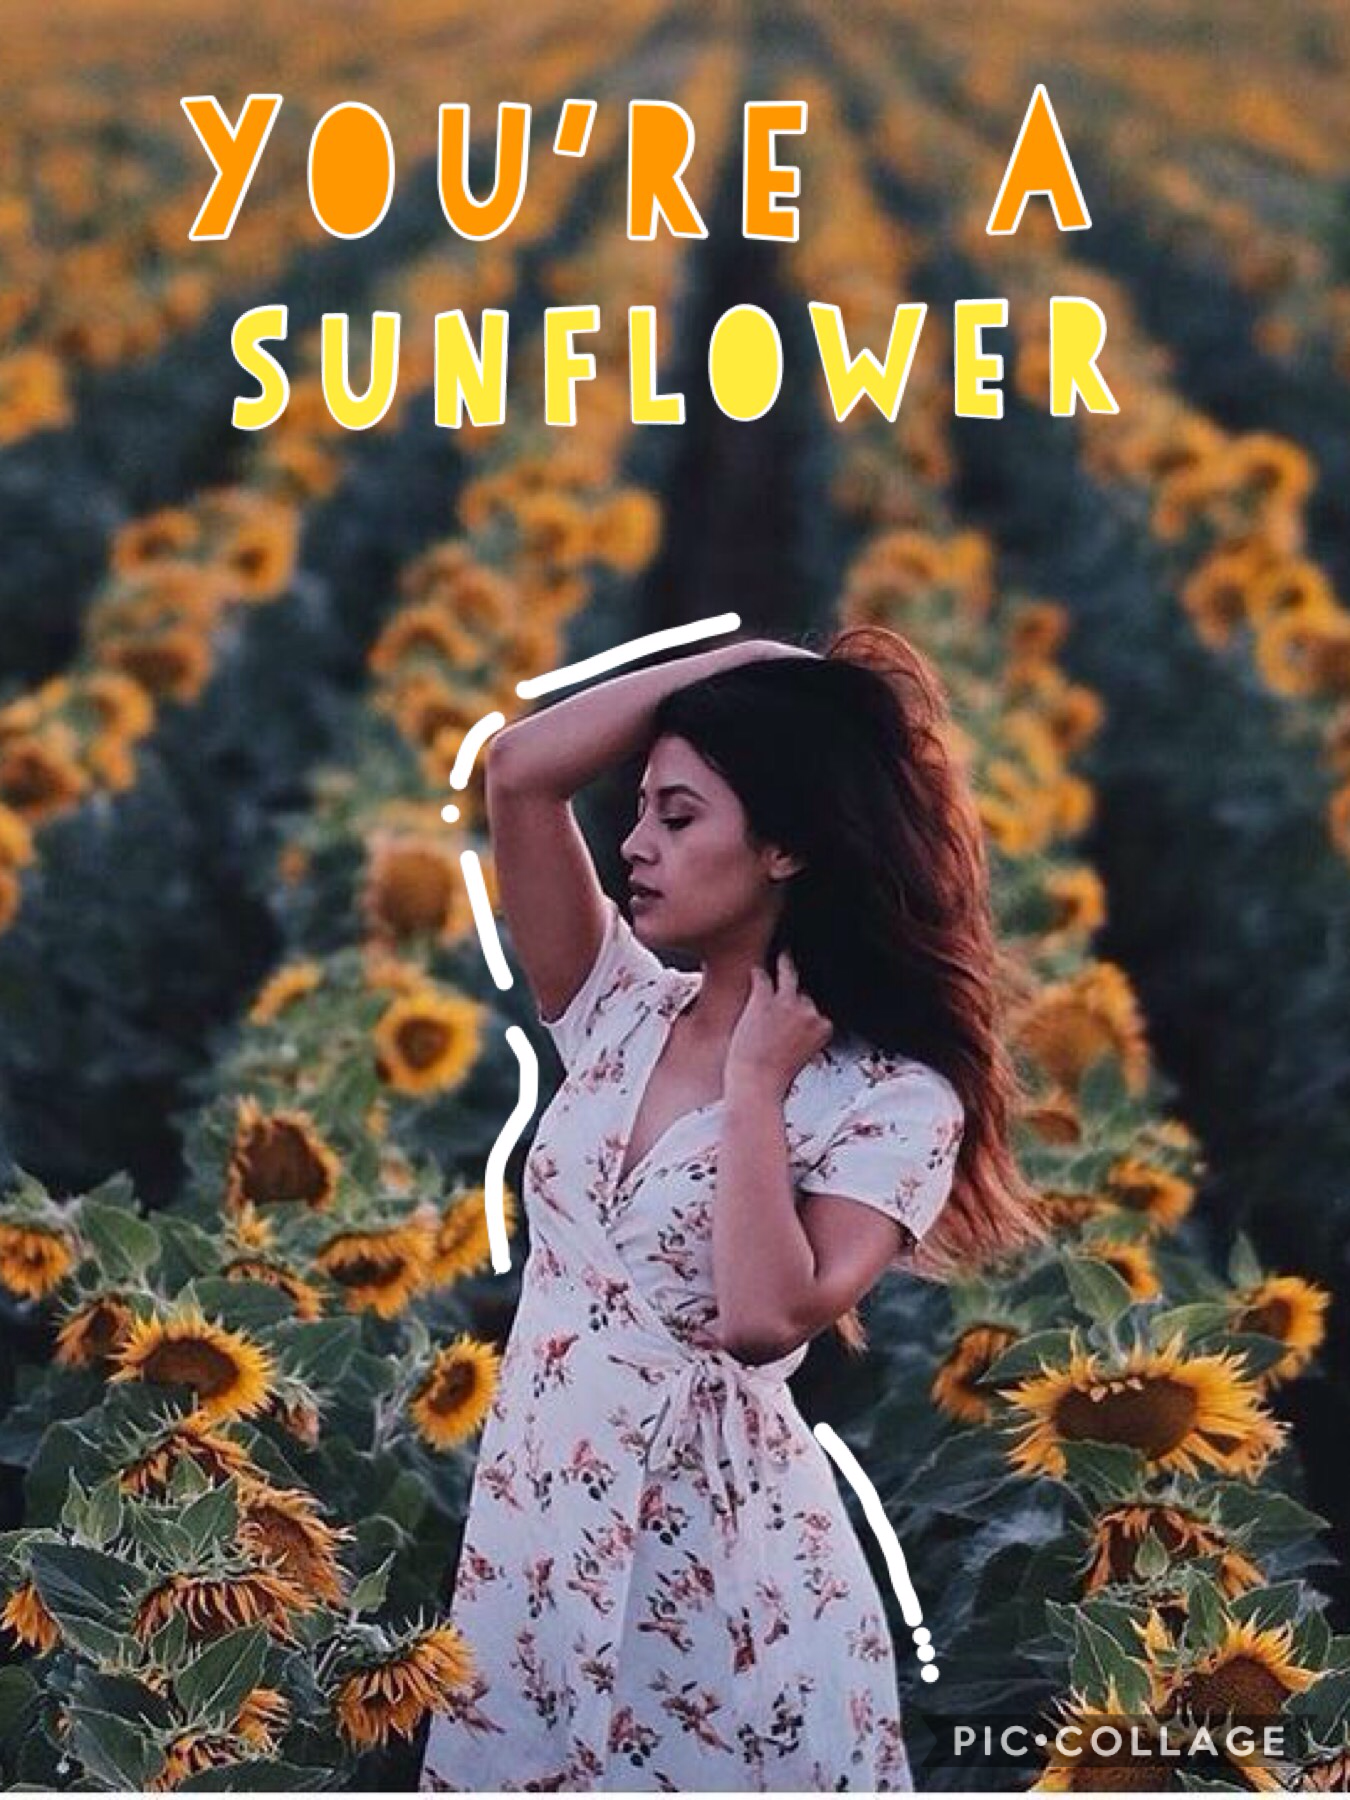 Sunflower By Post Malone and Swae Lee  Now one of my favorite song